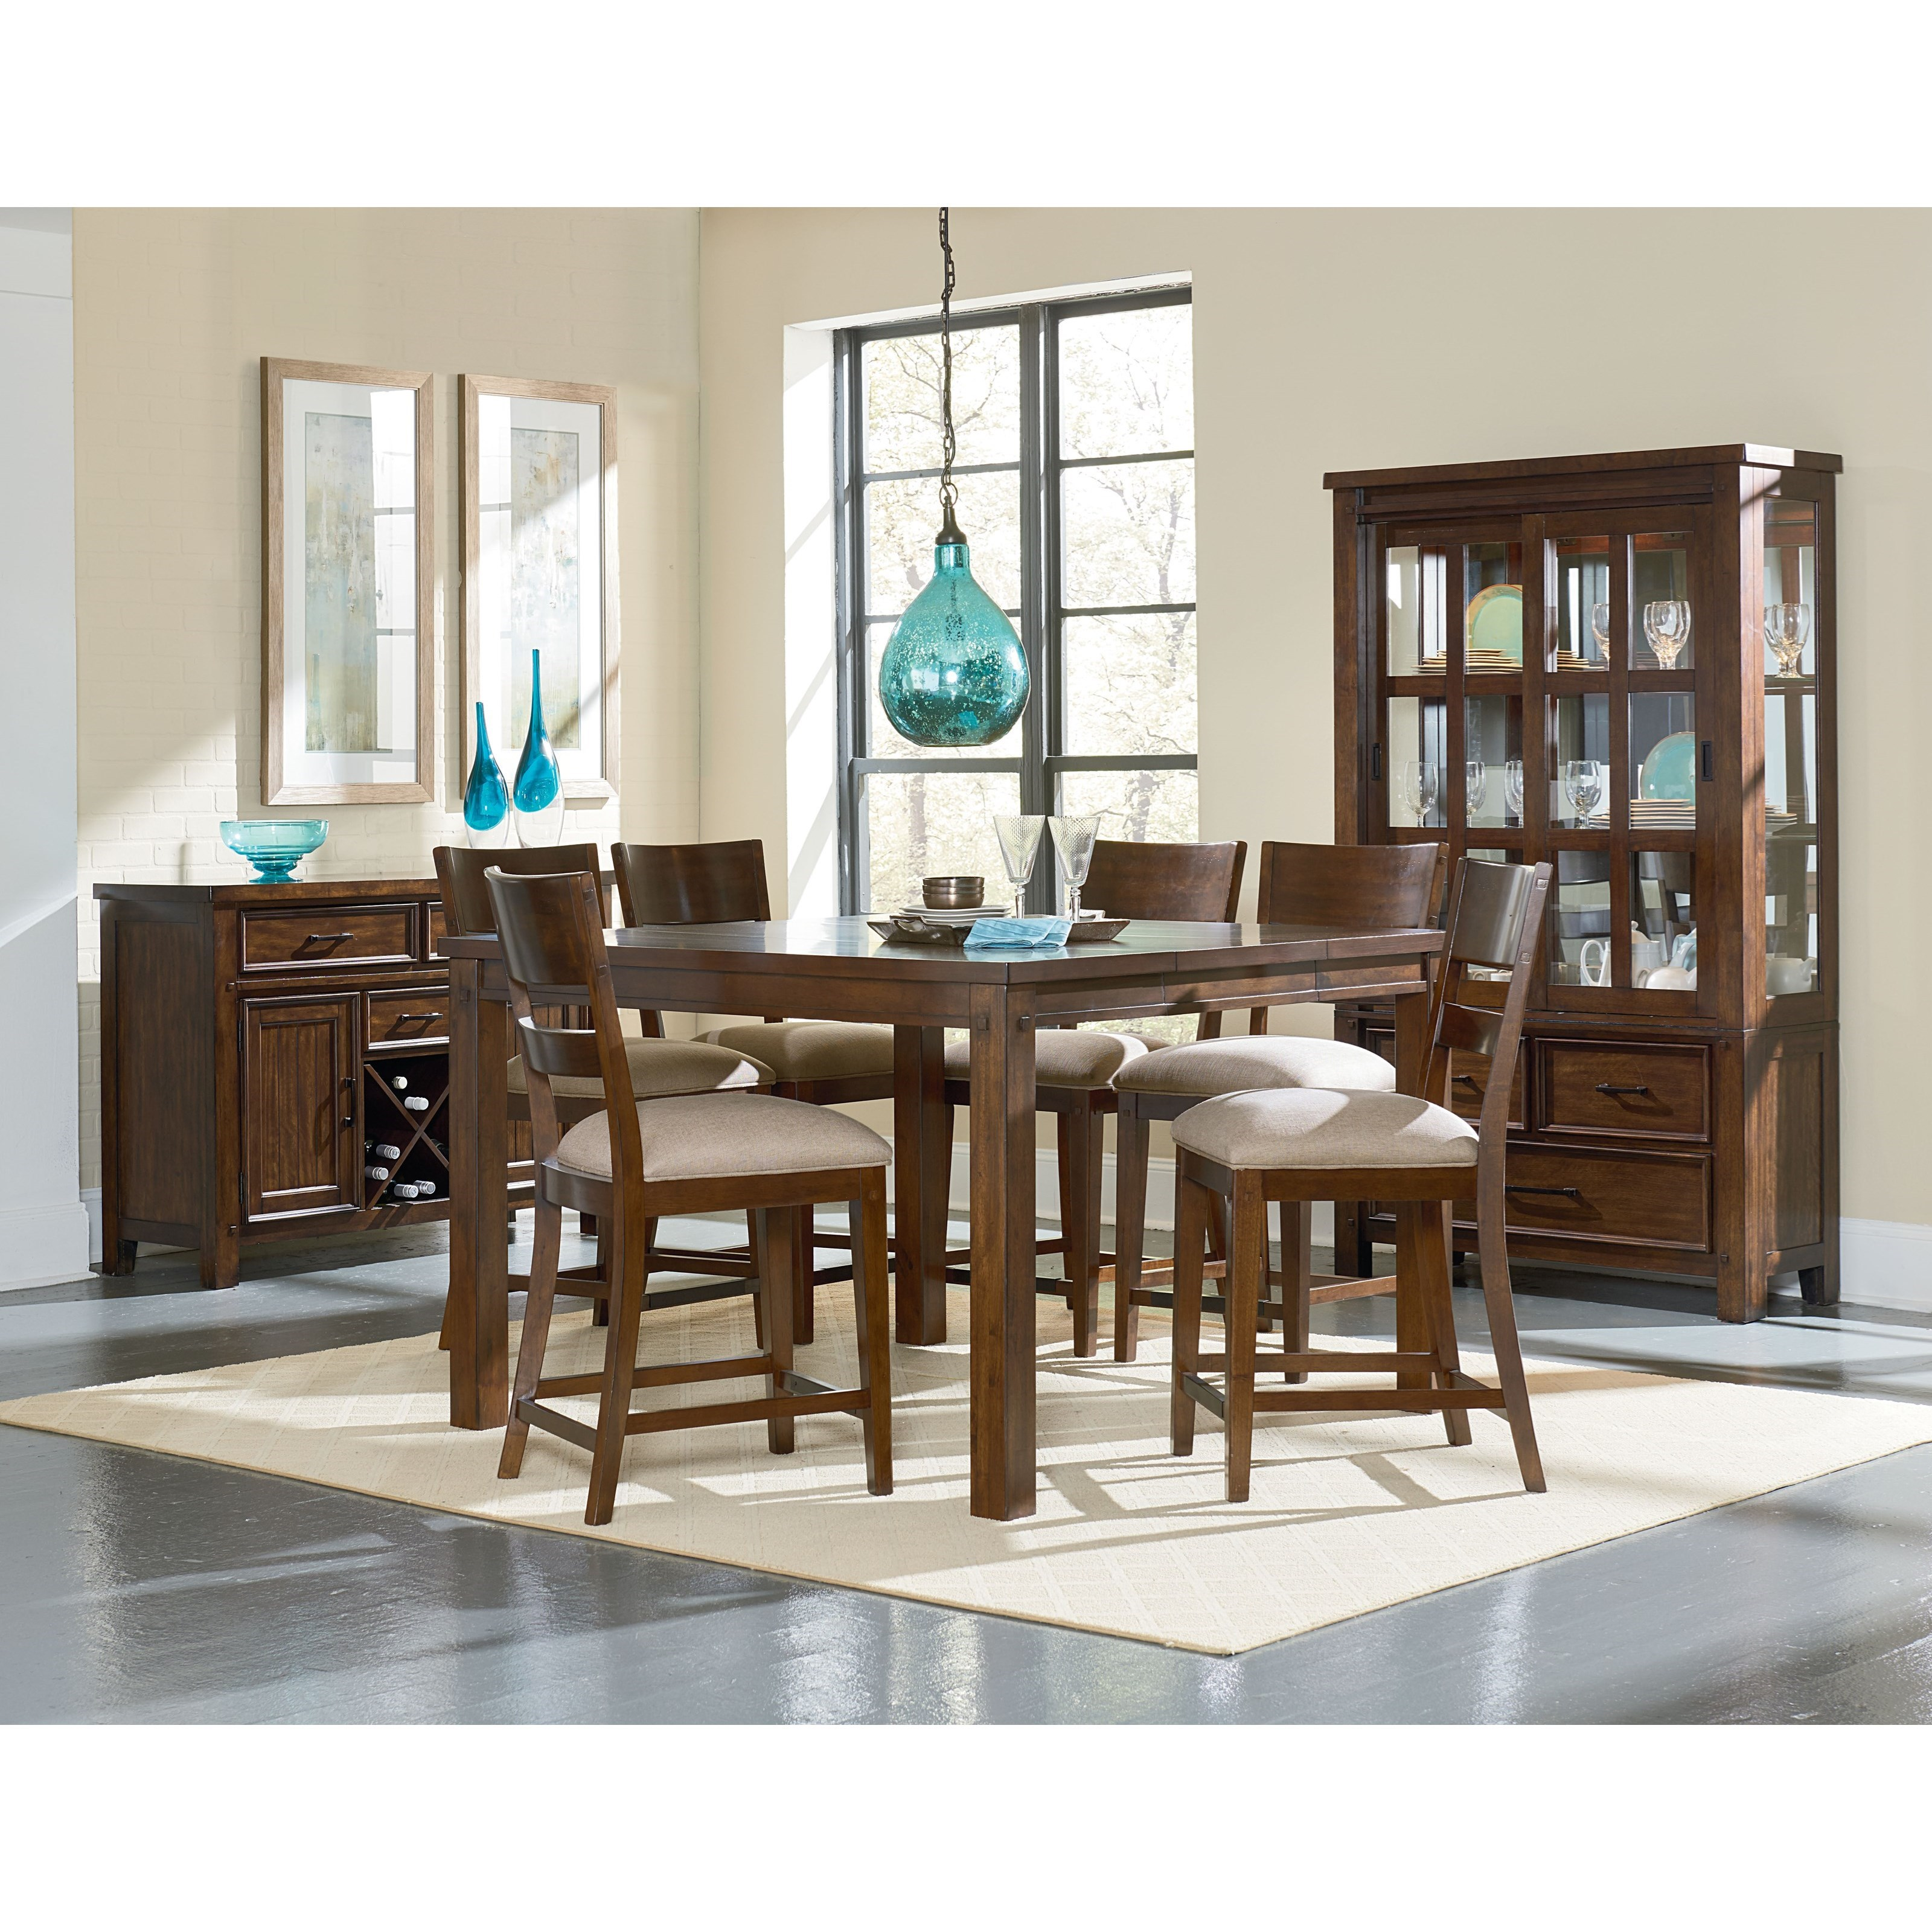 Casual Dining Room Furniture: Standard Furniture Cameron Casual Dining Room Group